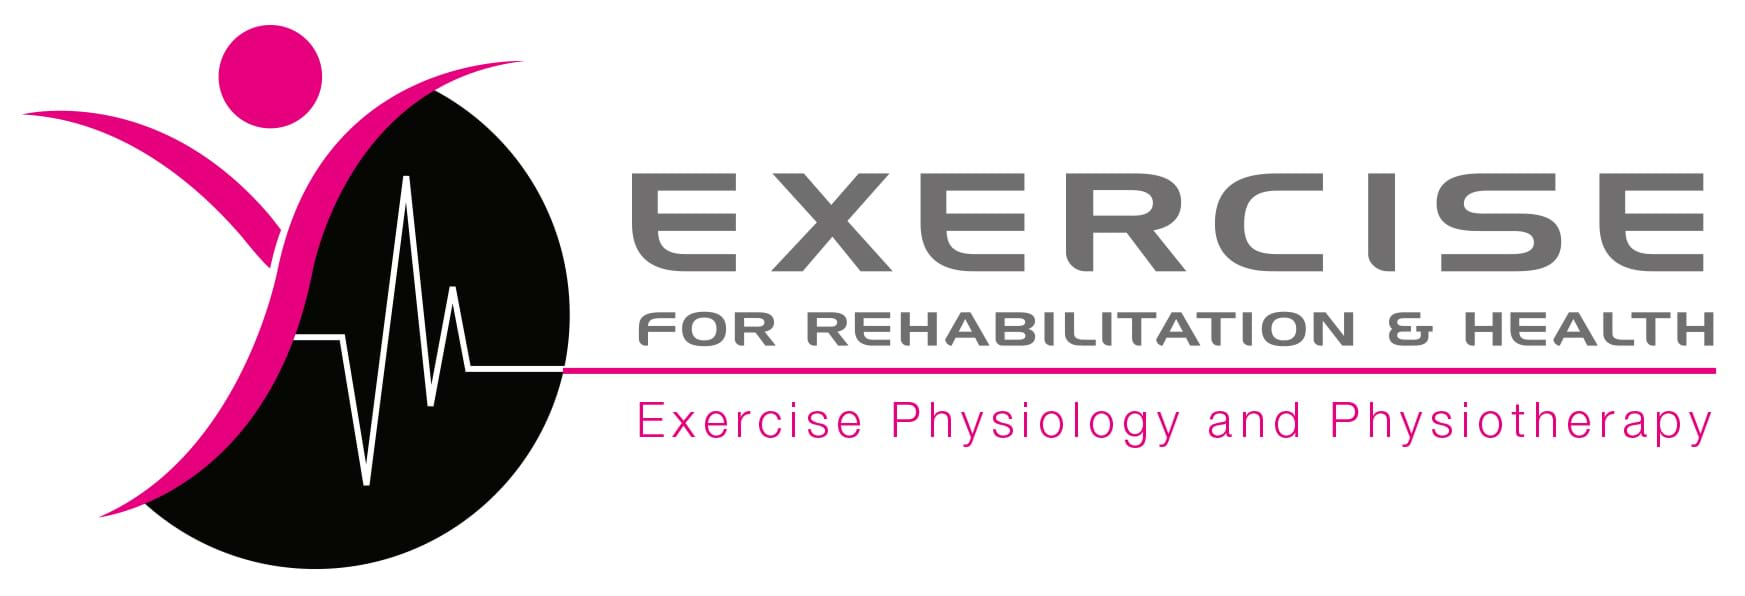 Exercise for Rehabiliation & Health